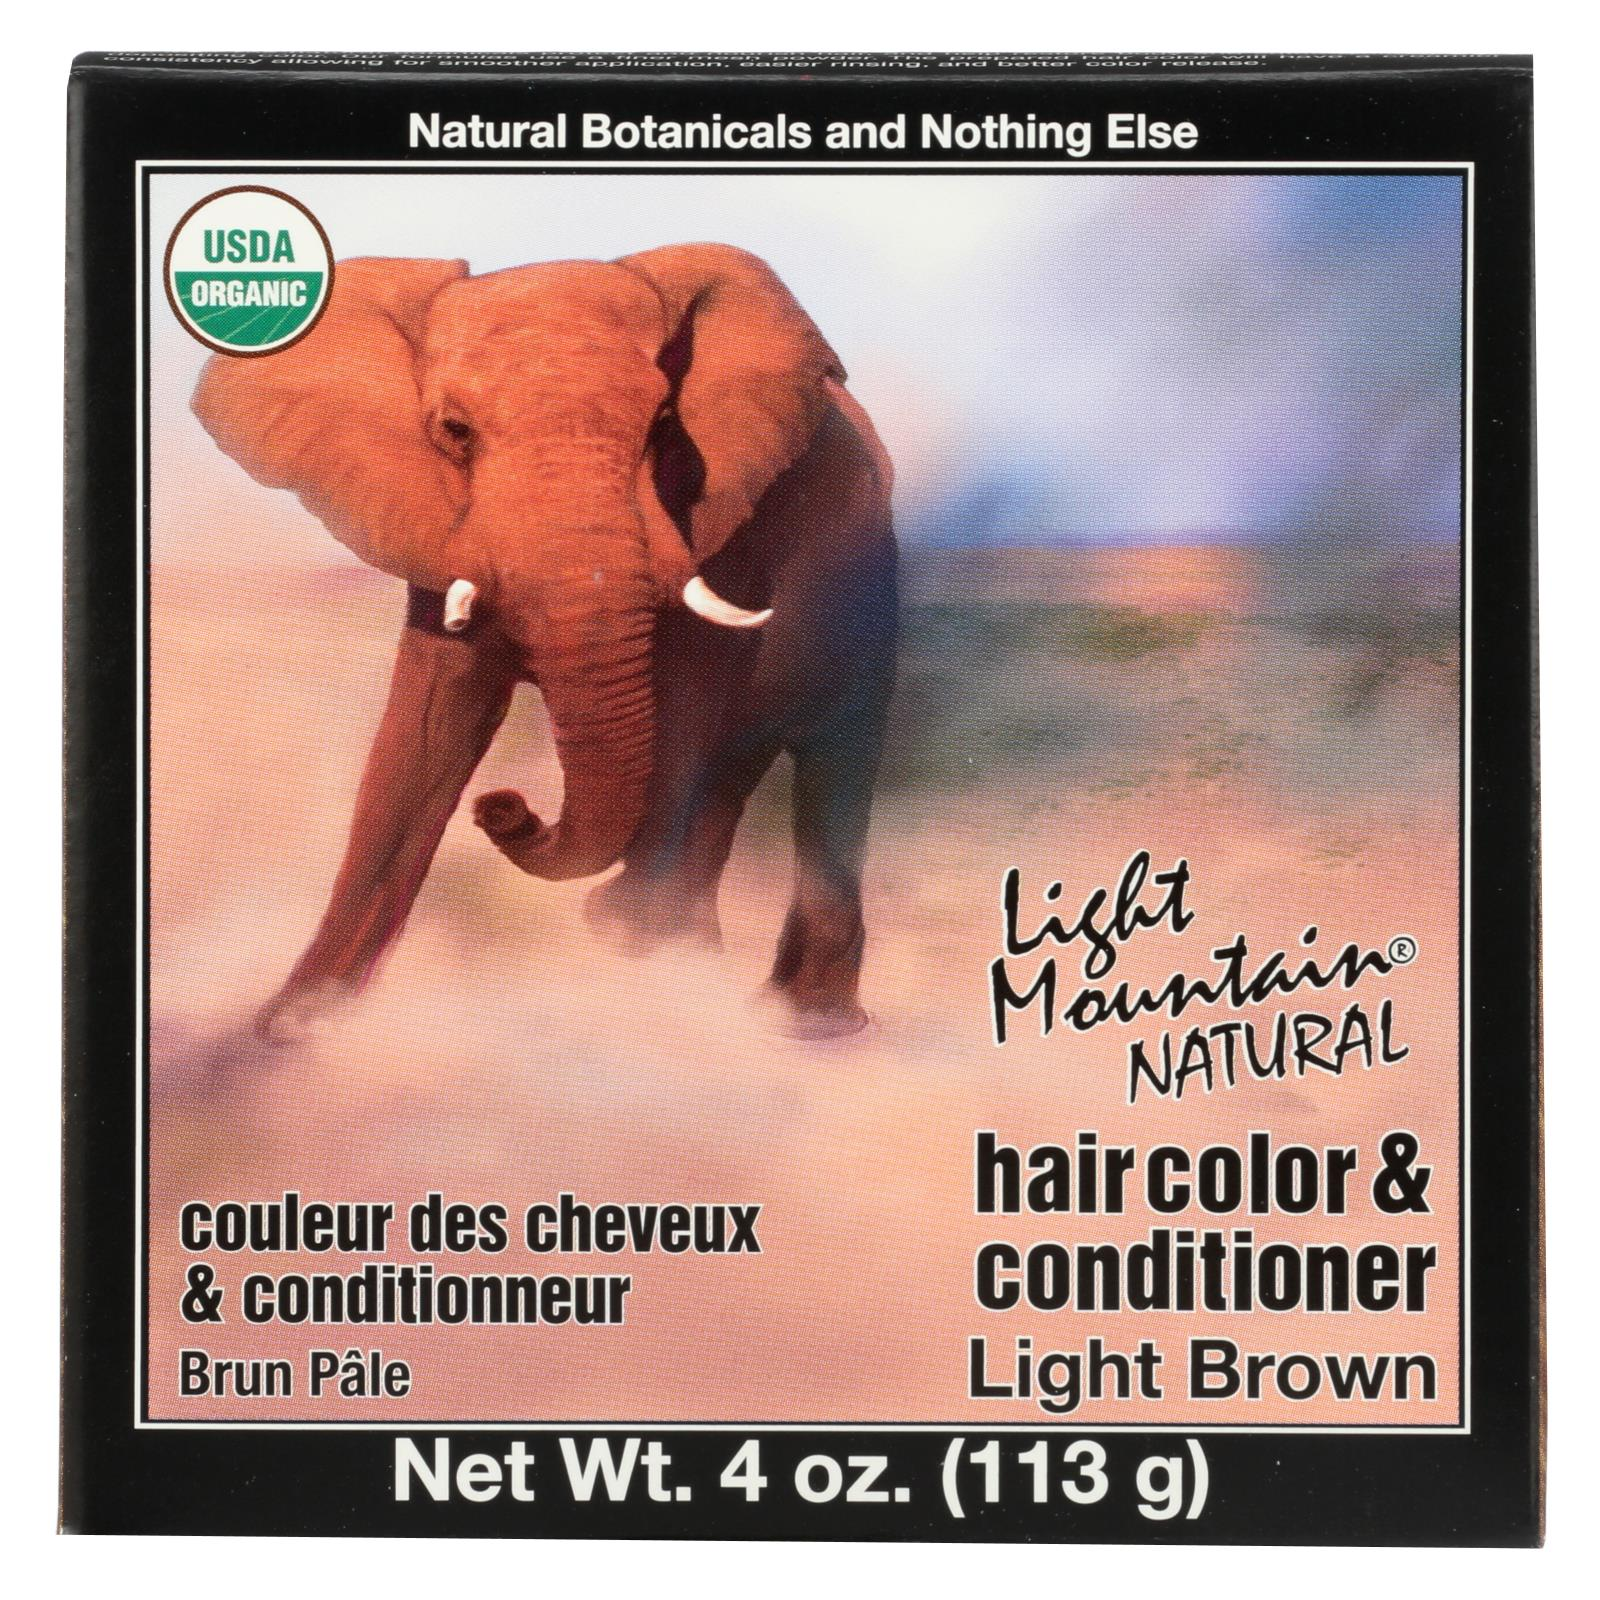 Buy Light Mountain Hair Color/Conditioner - Organic - Light Brown - 4 oz - Conditioner from Veroeco.com